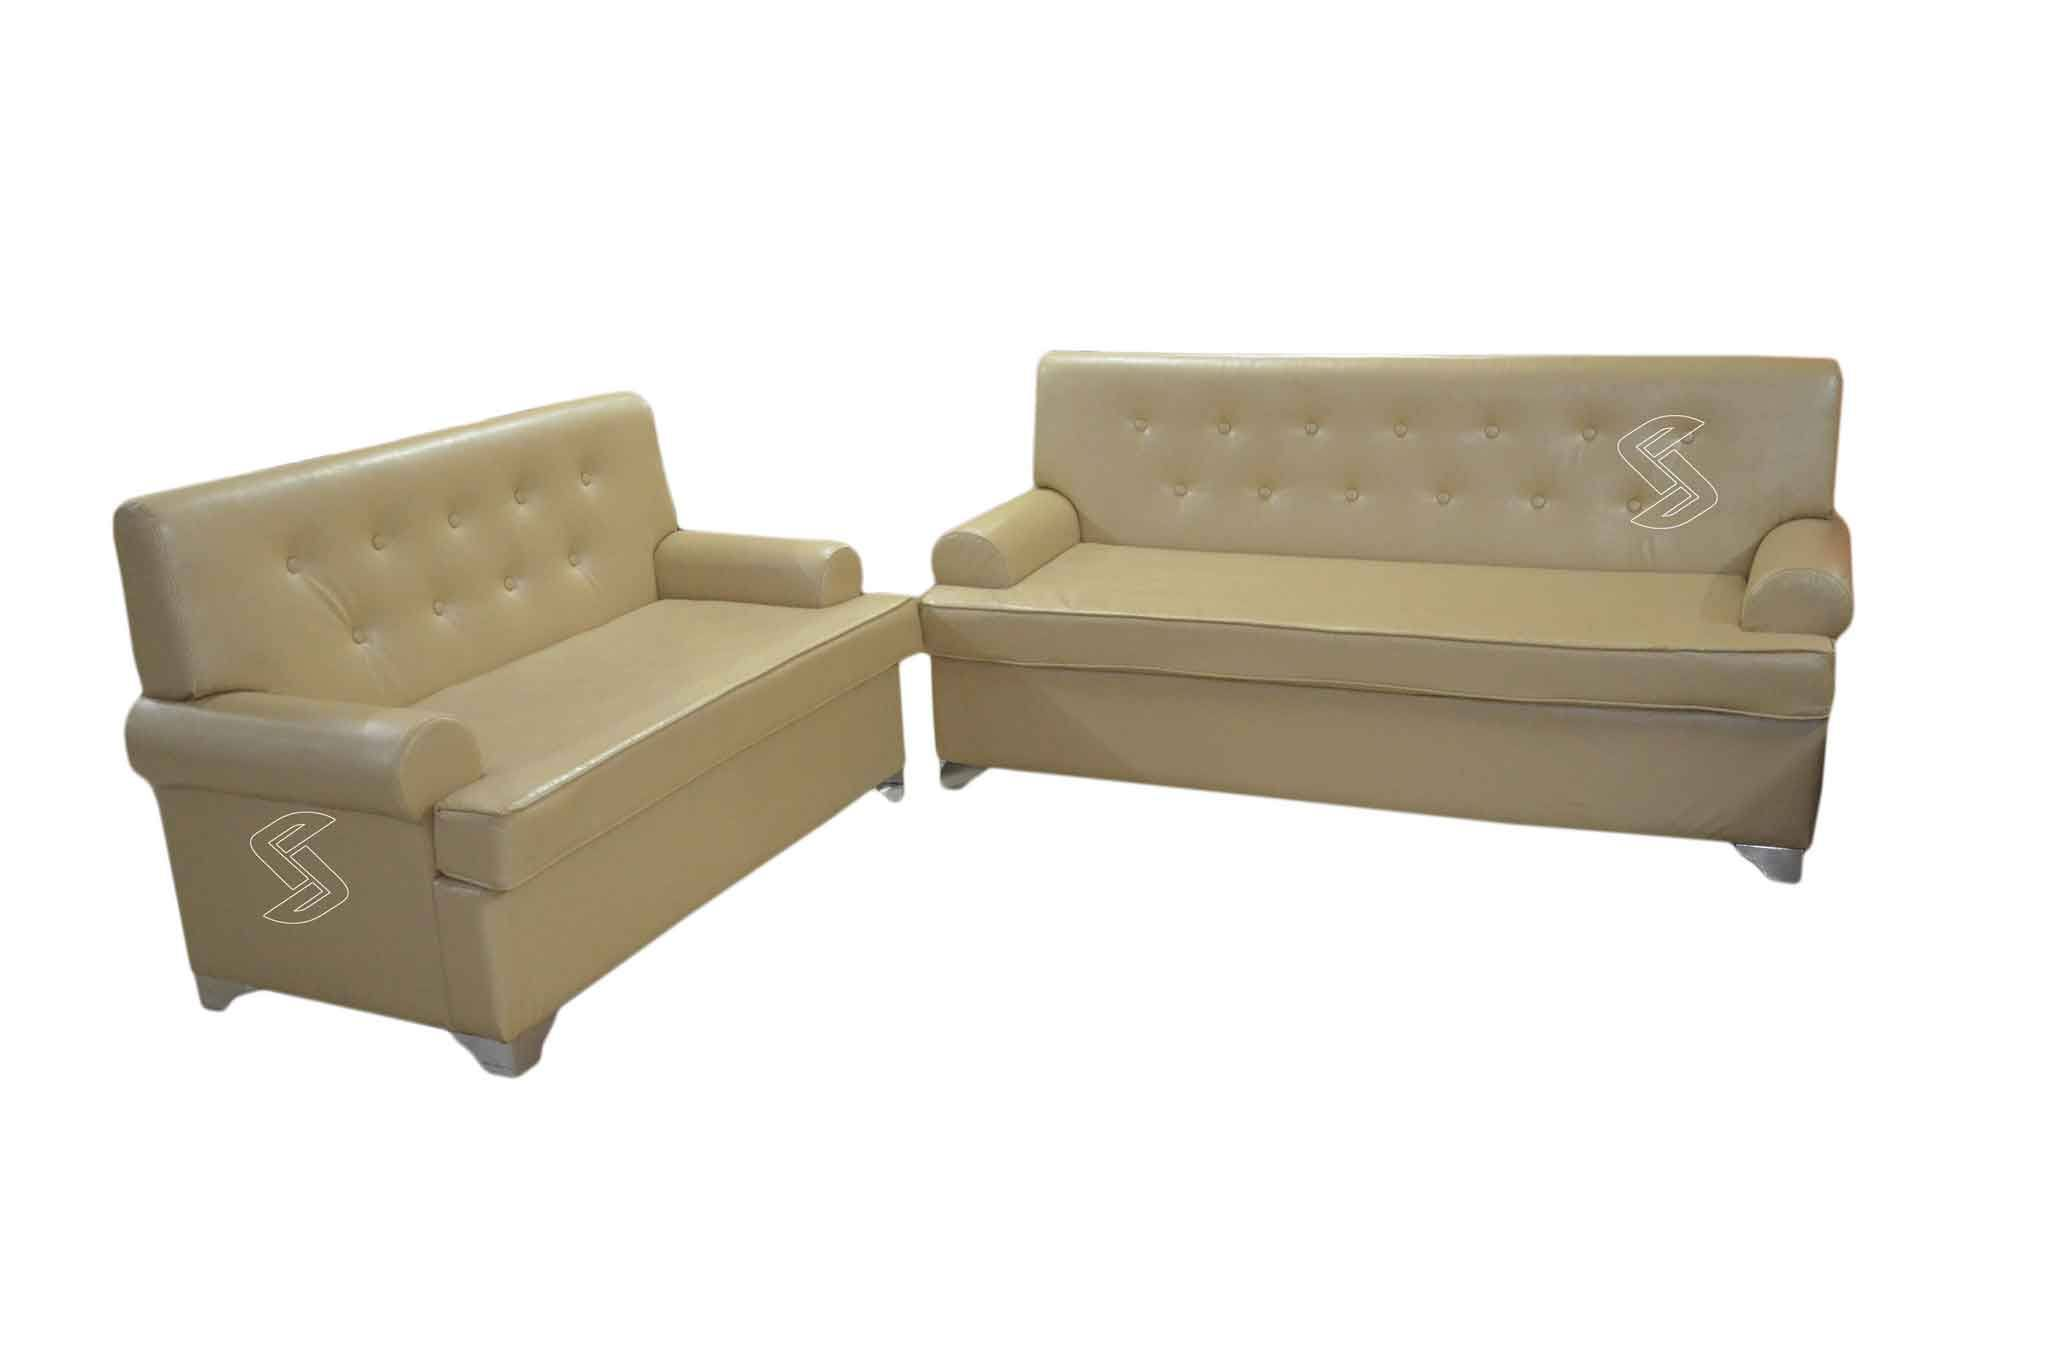 Sofa Set Second Sale In Hyderabad Second Hand Wooden Sofa Set In Hyderabad Www